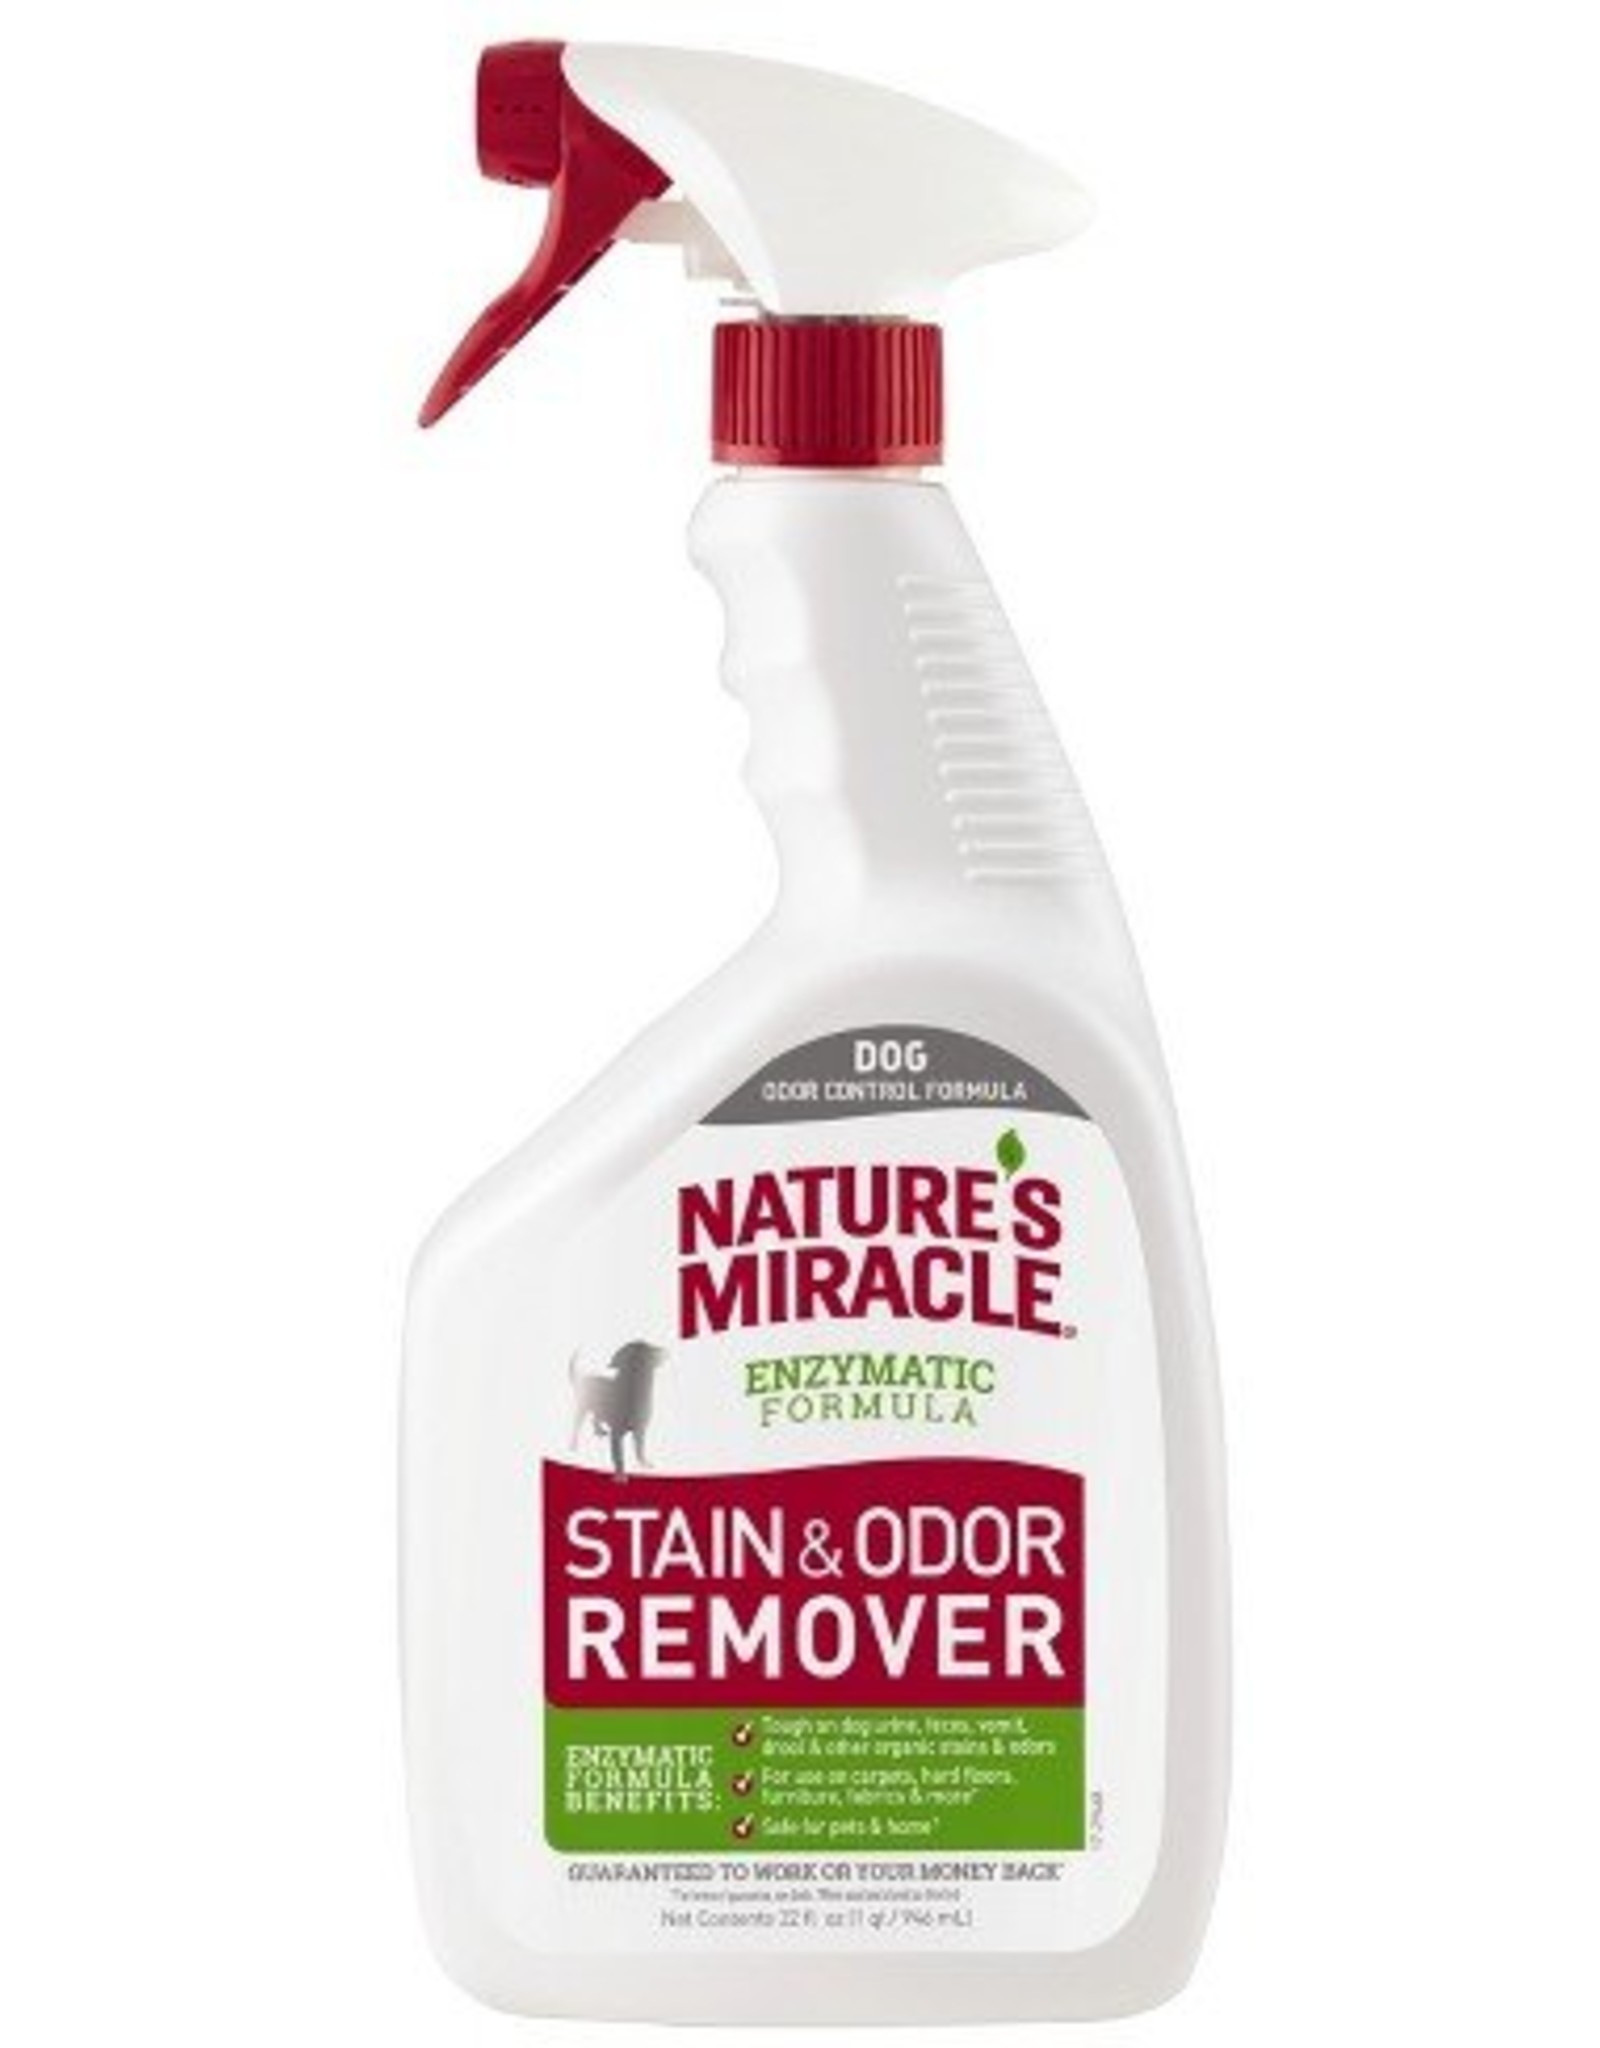 Natures Miracle Oxy Stain & Odor Remover Enzymatic Formula, 32 oz.